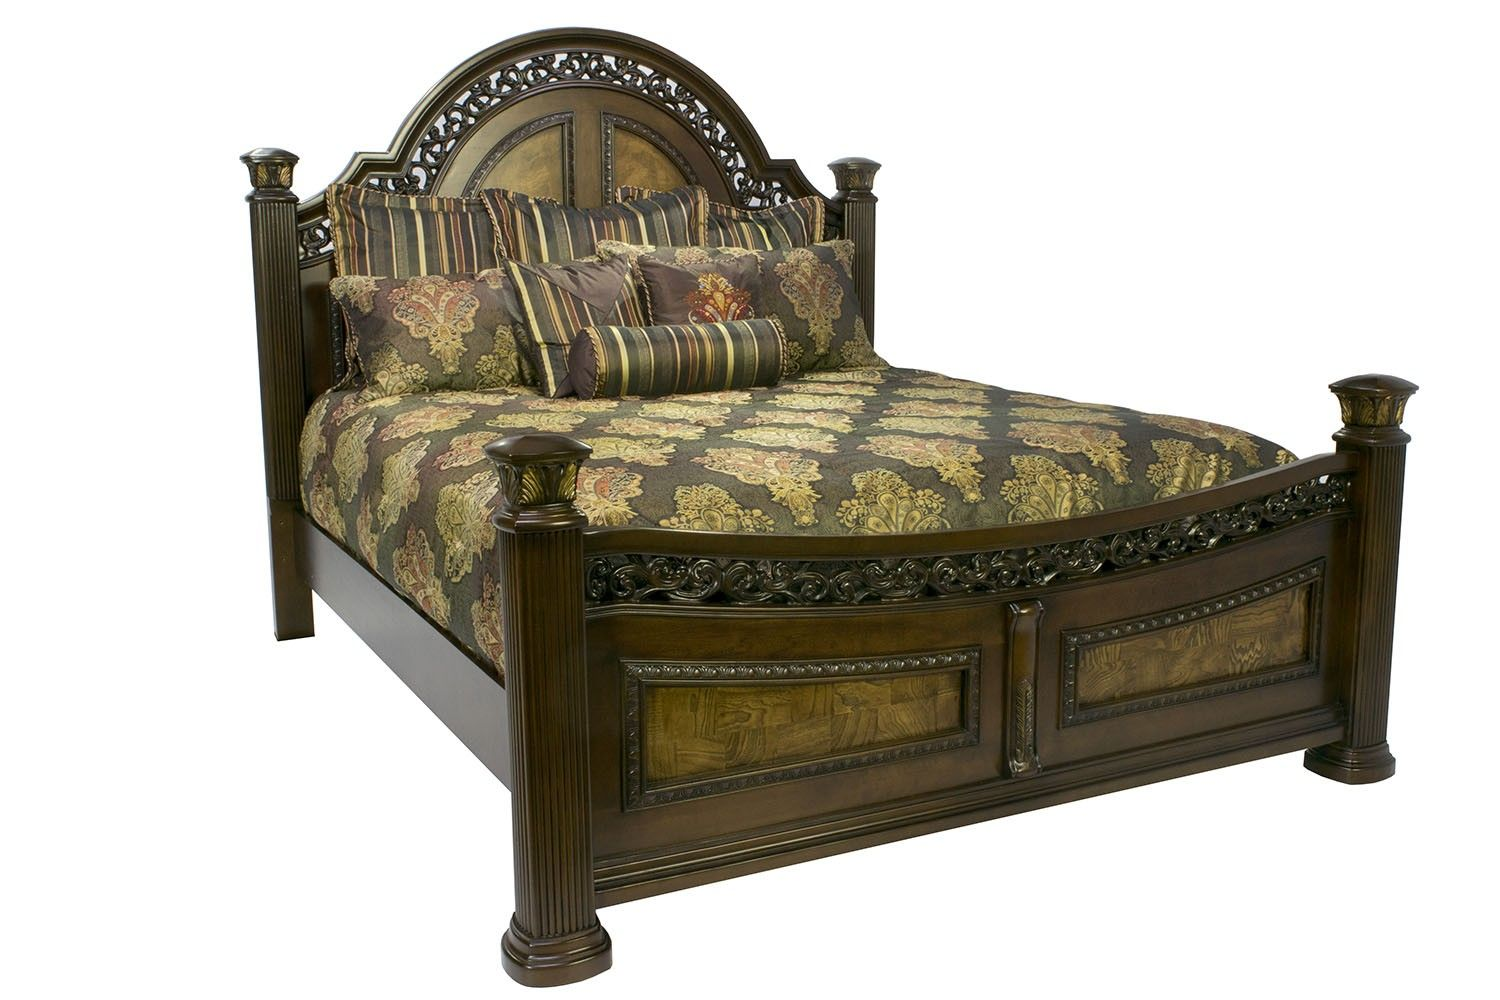 furniture collection diamond dresser mor the image bedroom media product sets for mirror less